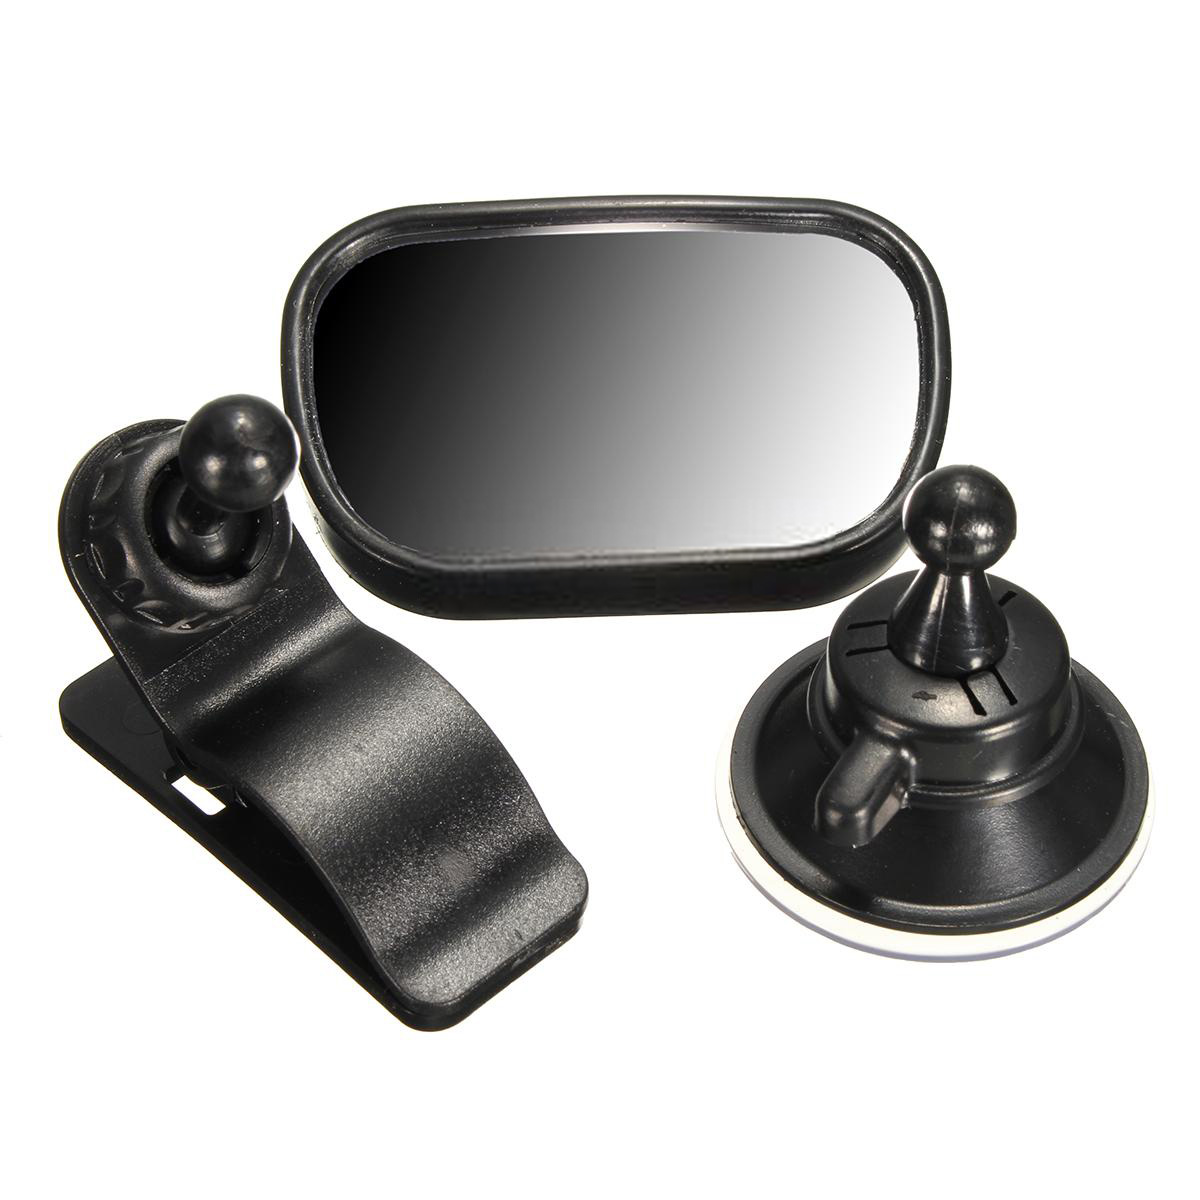 car safety seat rear-view mirror for children ...